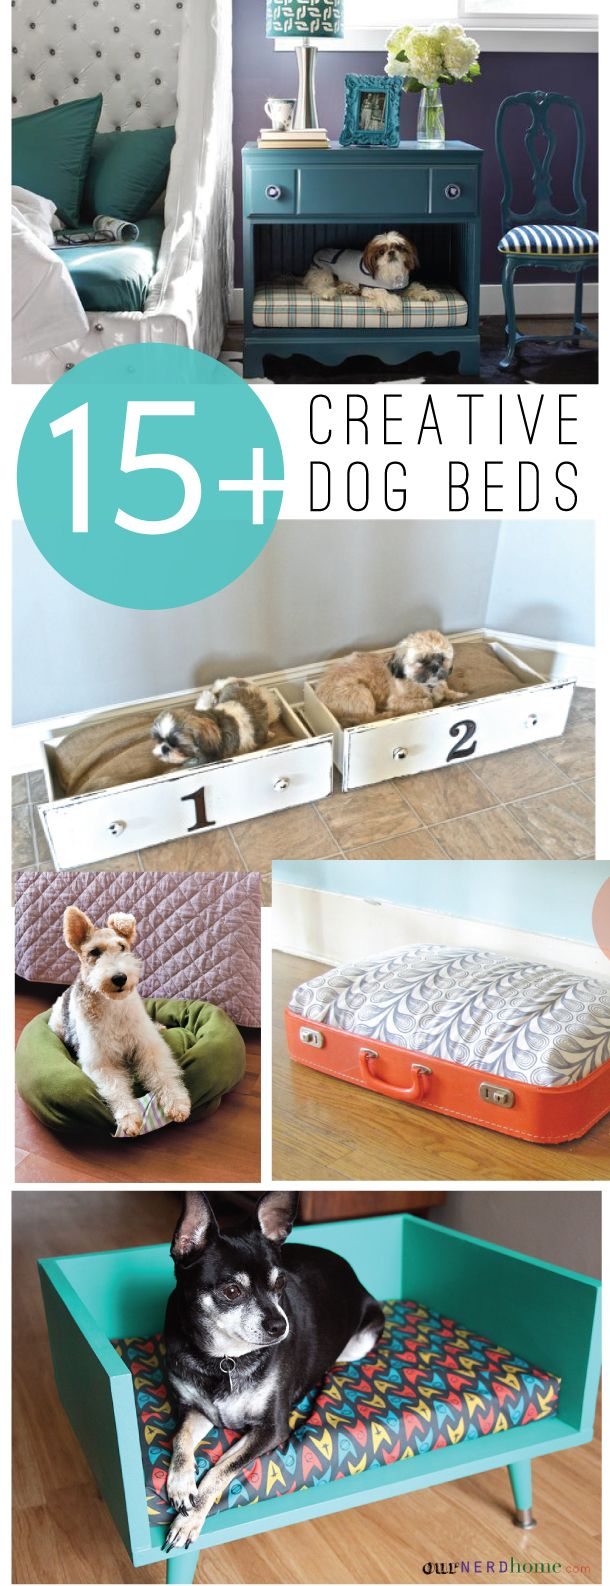 A fantastic round up of creative DIY Dog Beds! Perfect for dog-lovers who want to add a bit of style to their dog's sleeping space!